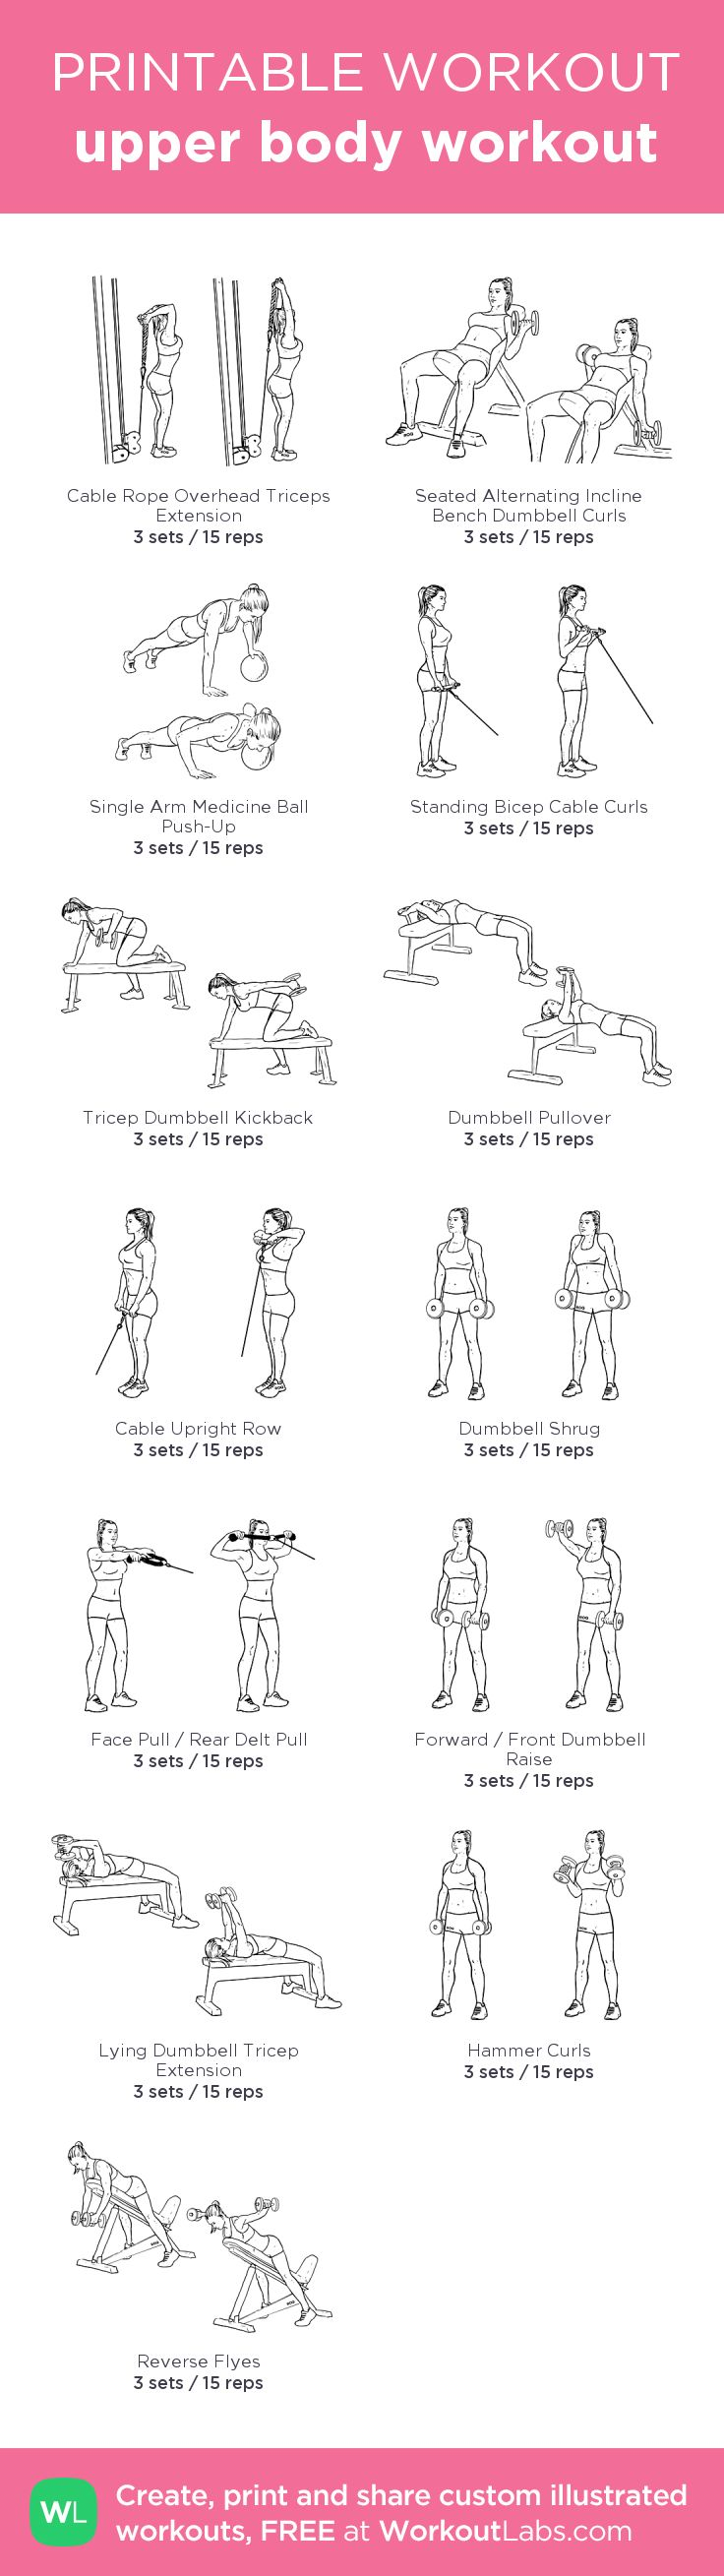 upper body workout:my visual workout created at WorkoutLabs.com • Click through to customize and download as a FREE PDF! #customworkout